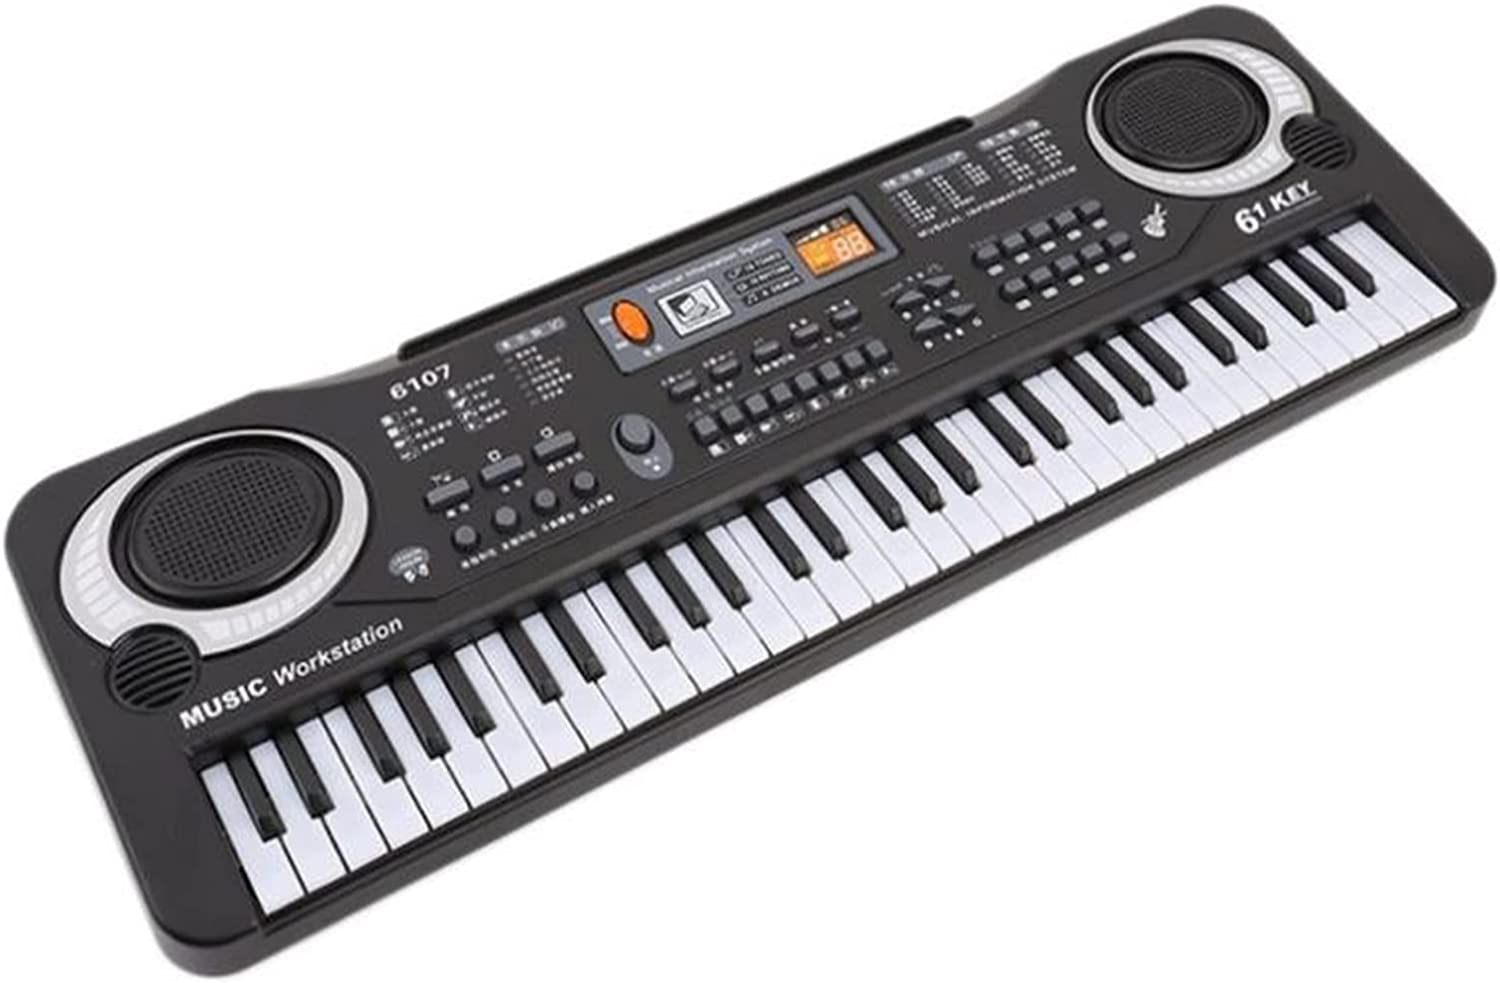 HJHJ Electronic Organ Children's Piano Portable Music Max 67% OFF 2021 autumn and winter new Keyboard